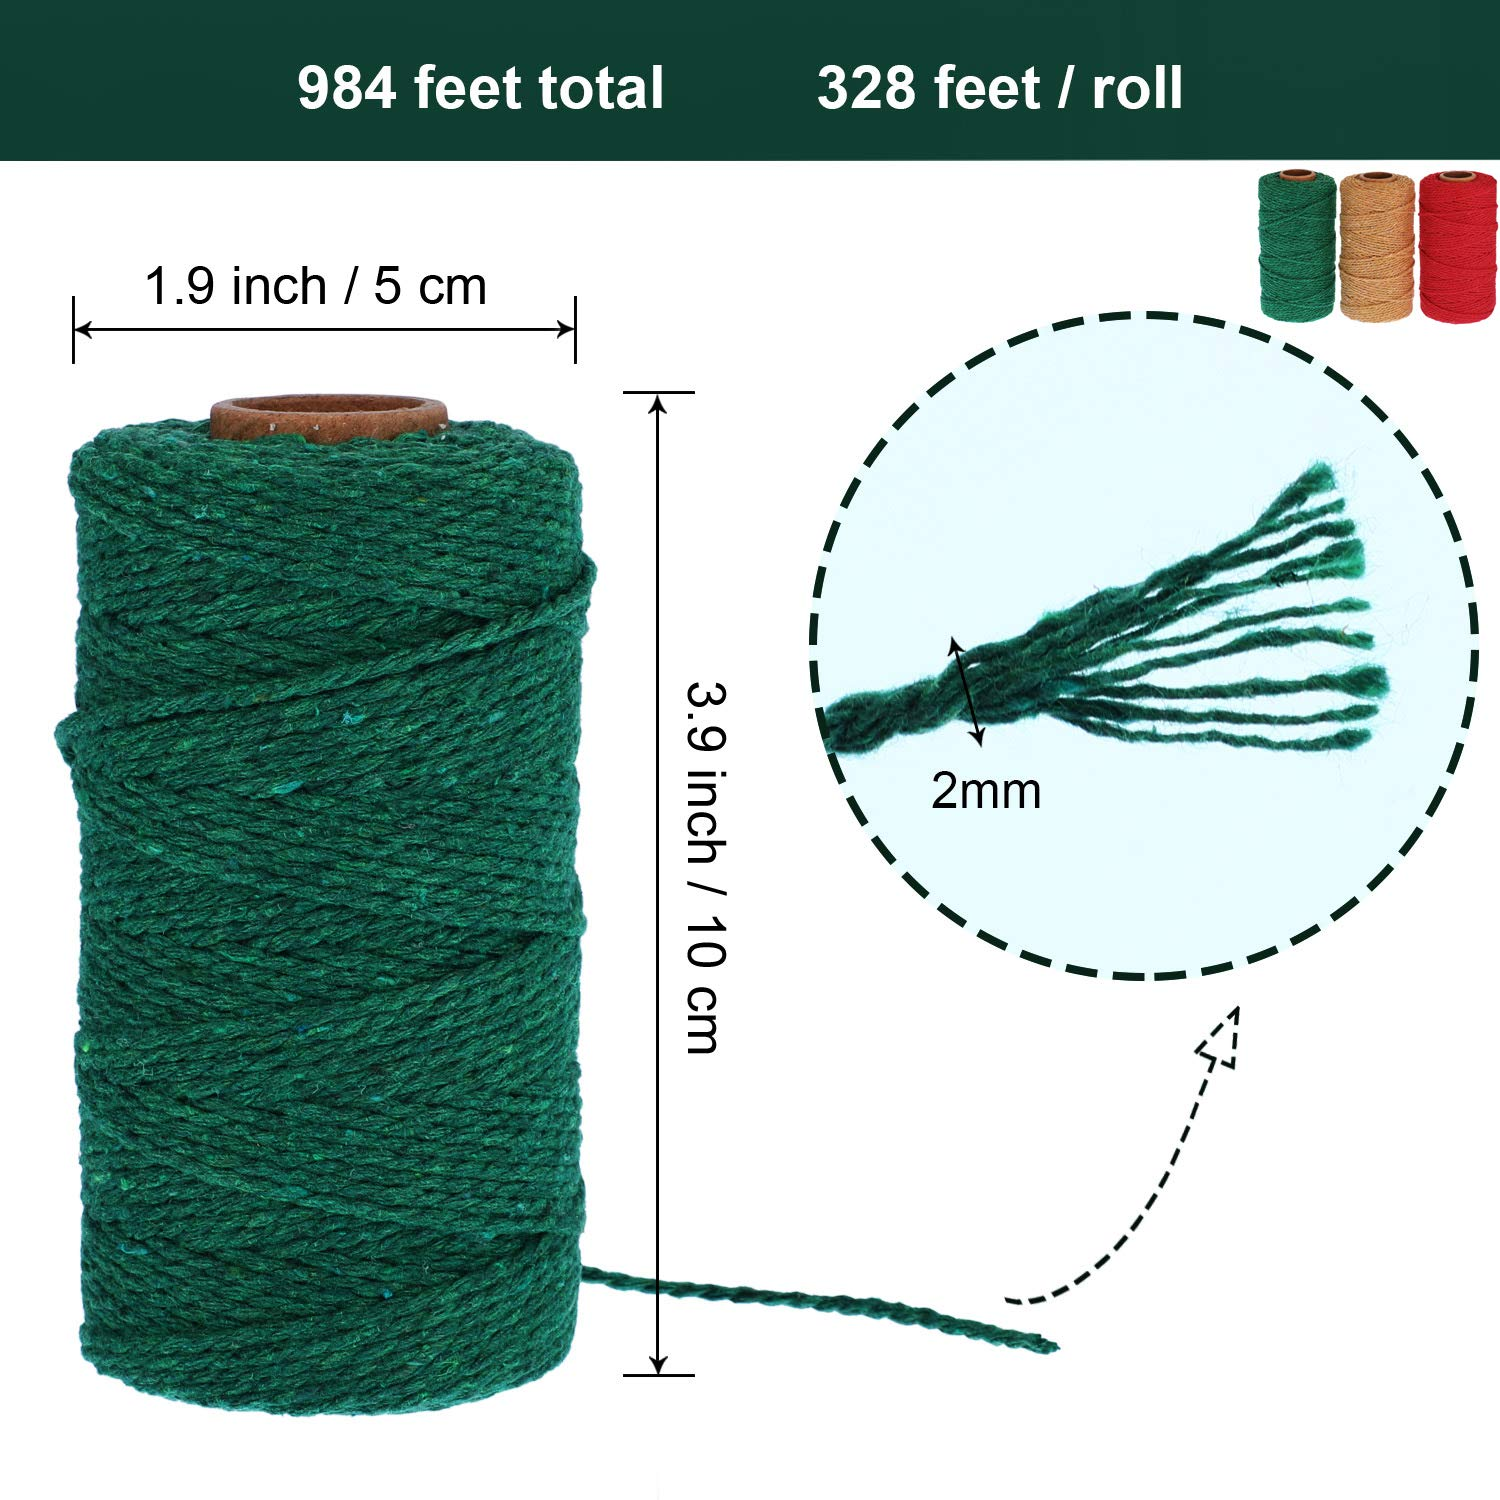 Amazon.com : Pangda 984 Feet Cotton Baker Twine 2 mm Valentines Day Christmas Wrapping String Rope for DIY Craft, 3 Colors (Red, Green, Khaki) : Office ...